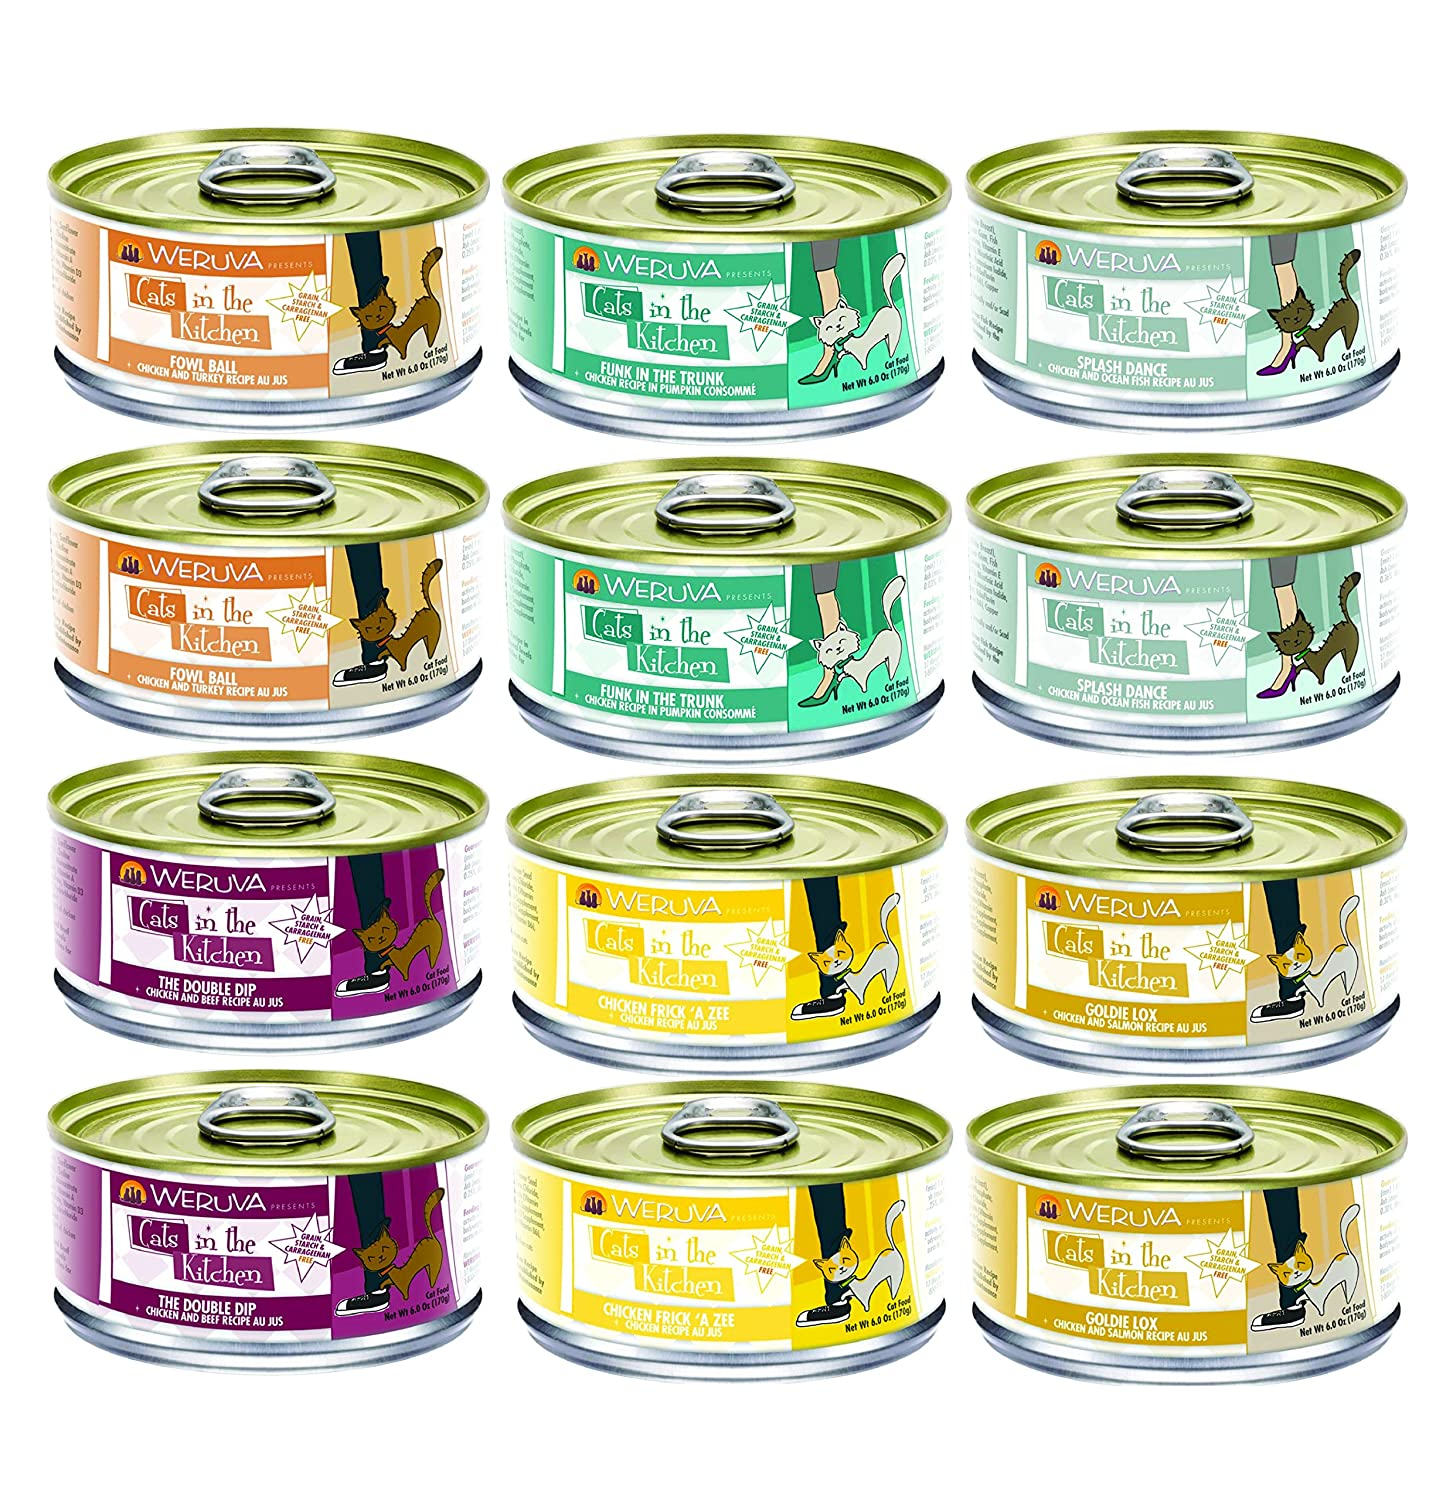 Weruva Cats In The Kitchen Canned Cat Food Mixed 6 Oz X 12 Cans With 6 Flavors